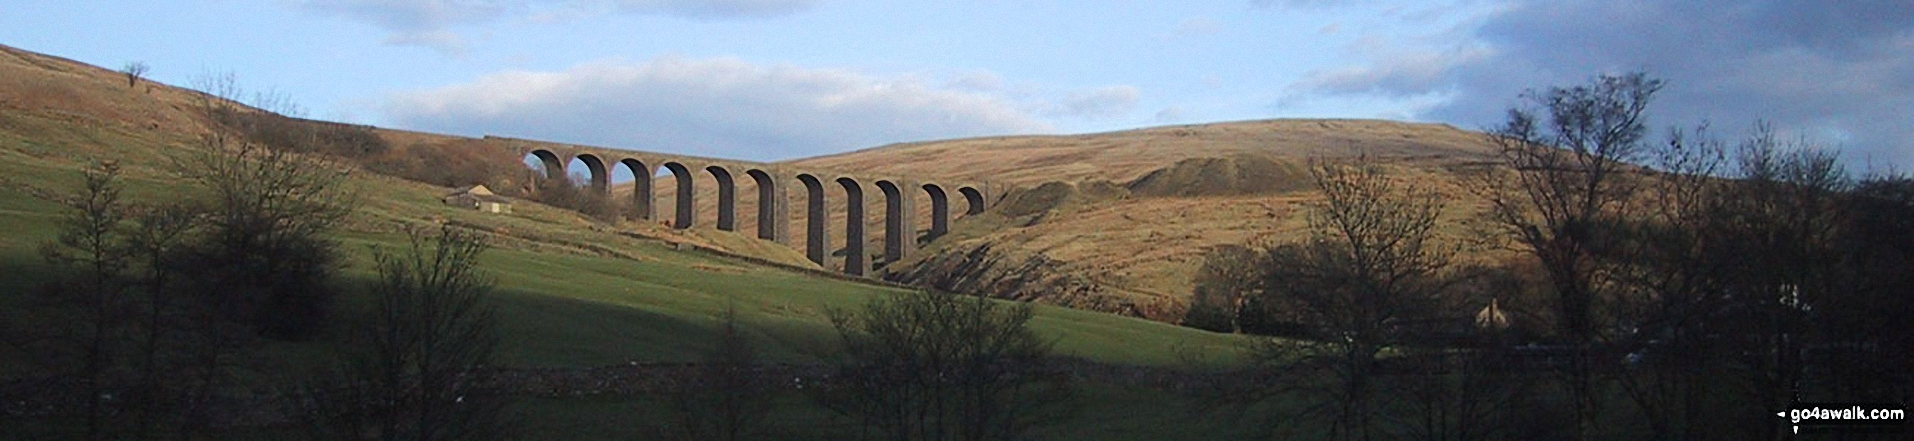 The Arten Gill Beck railway viaduct and Wold Fell from near Cowgill